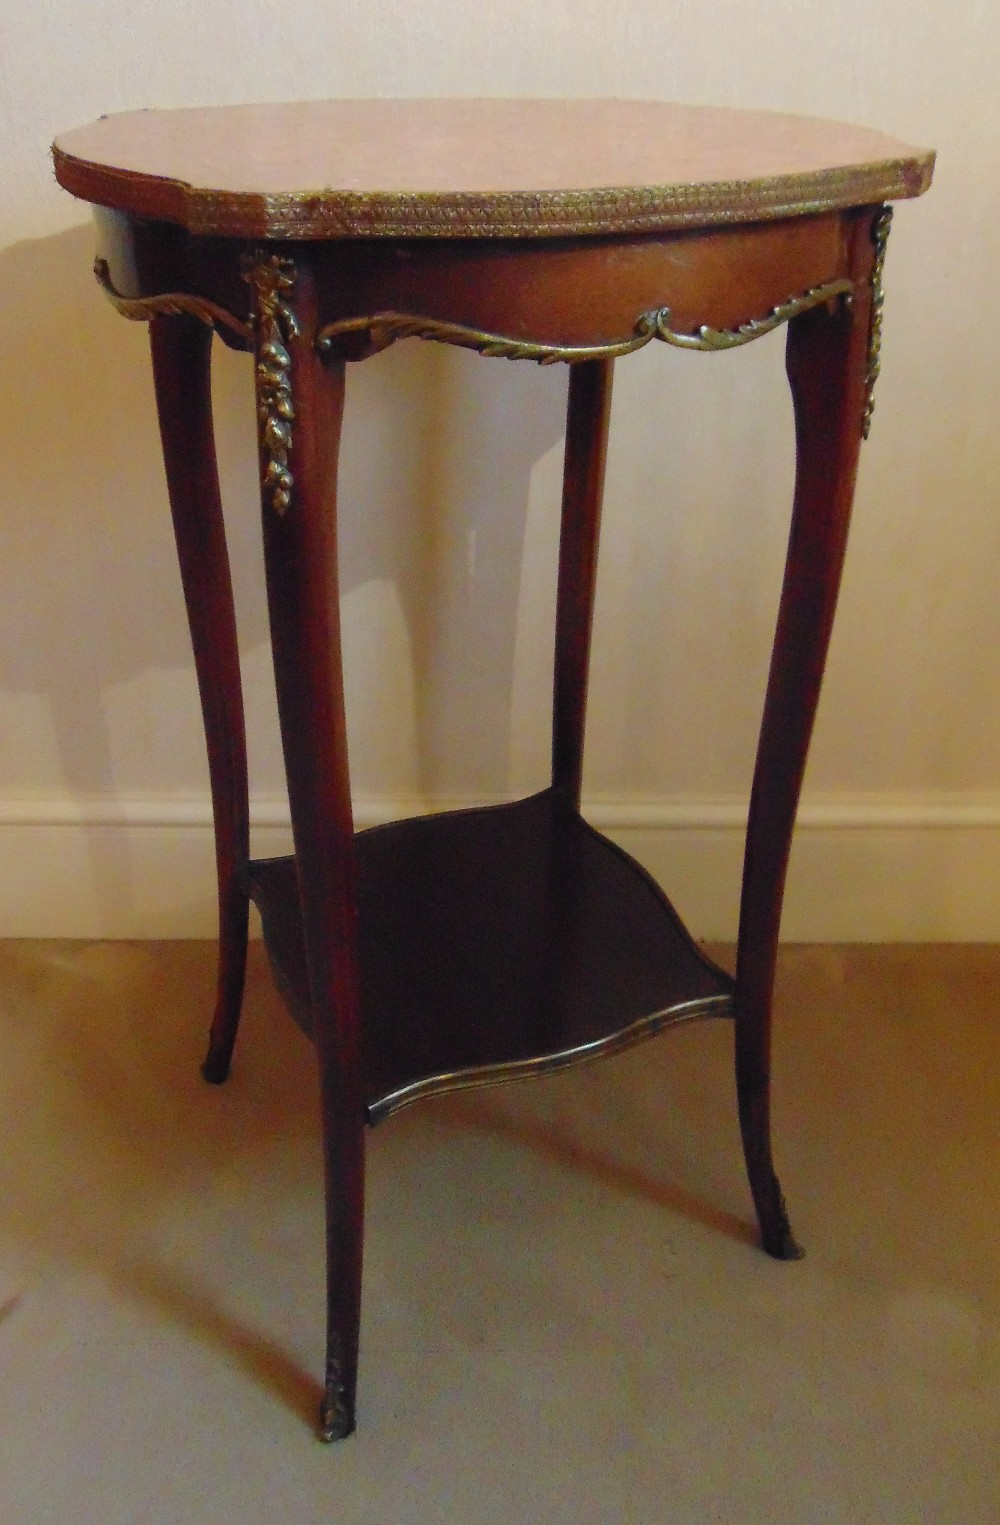 Lot 17 - A mahogany side table of shaped rectangular form with marble top and cabriole legs